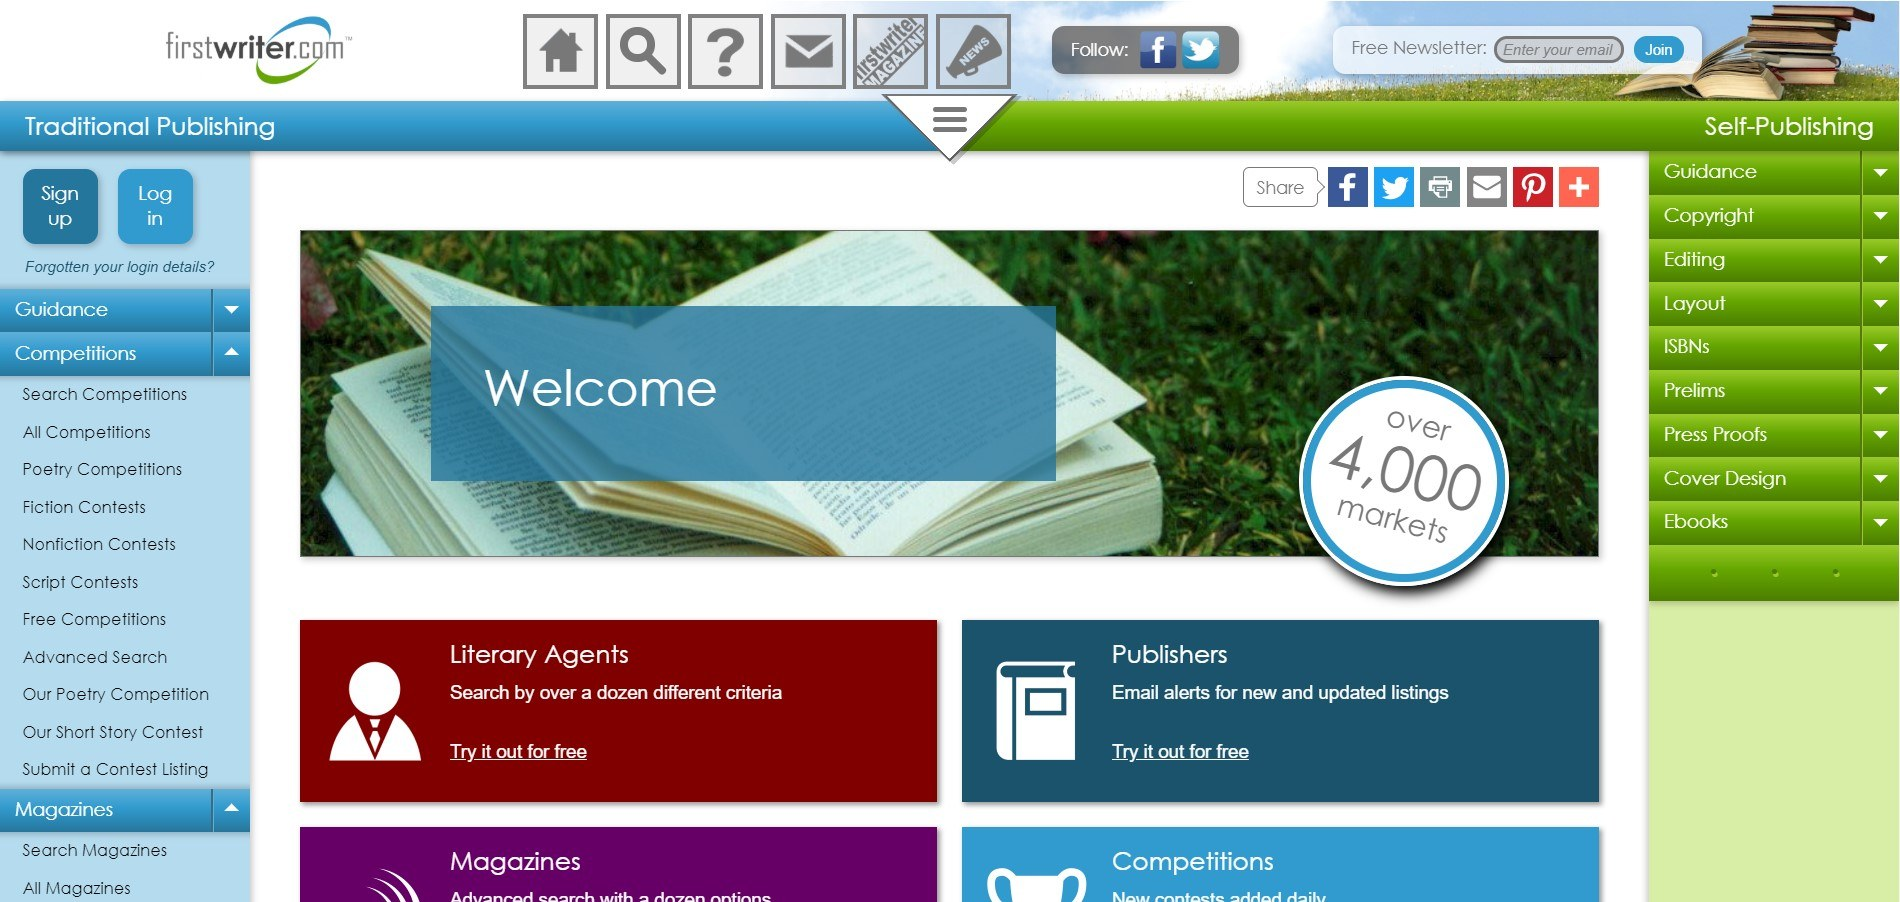 This screenshot is colorful, with a photo of an open book on green grass and text boxes in teal, turquoise, purple and maroon.